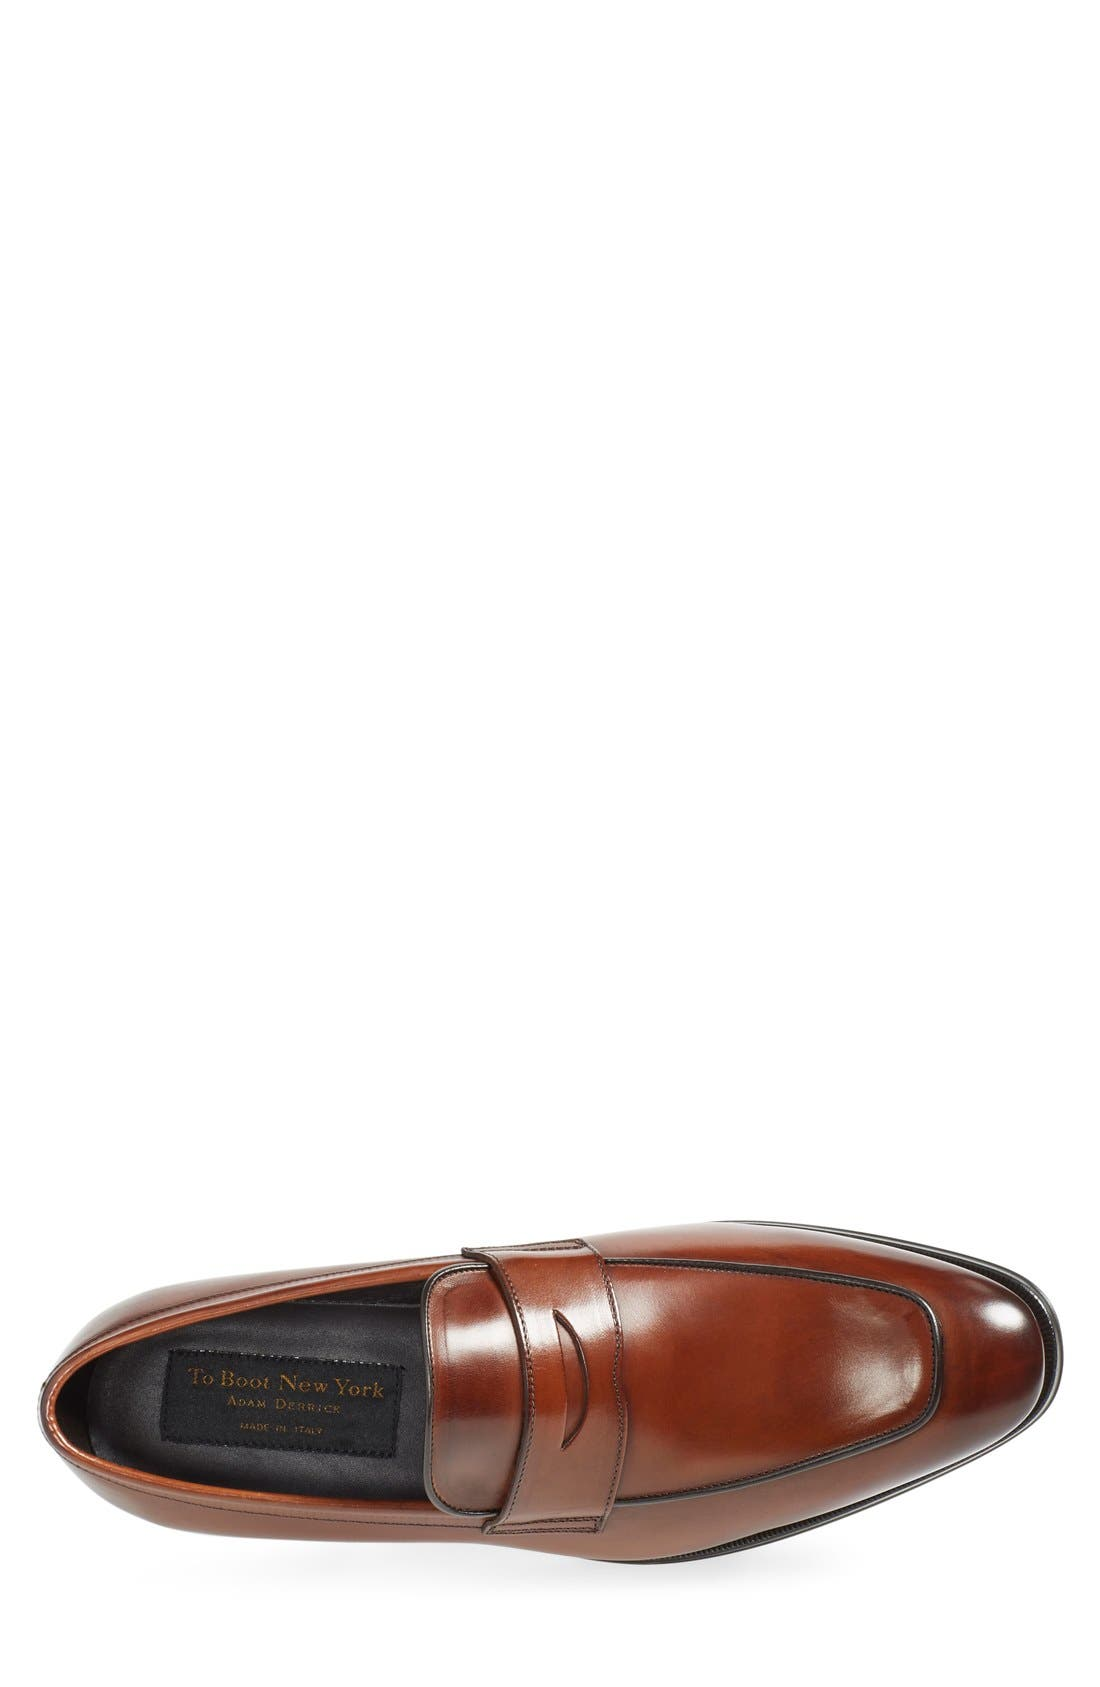 Alternate Image 2  - To Boot New York Dupont Penny Loafer (Men)